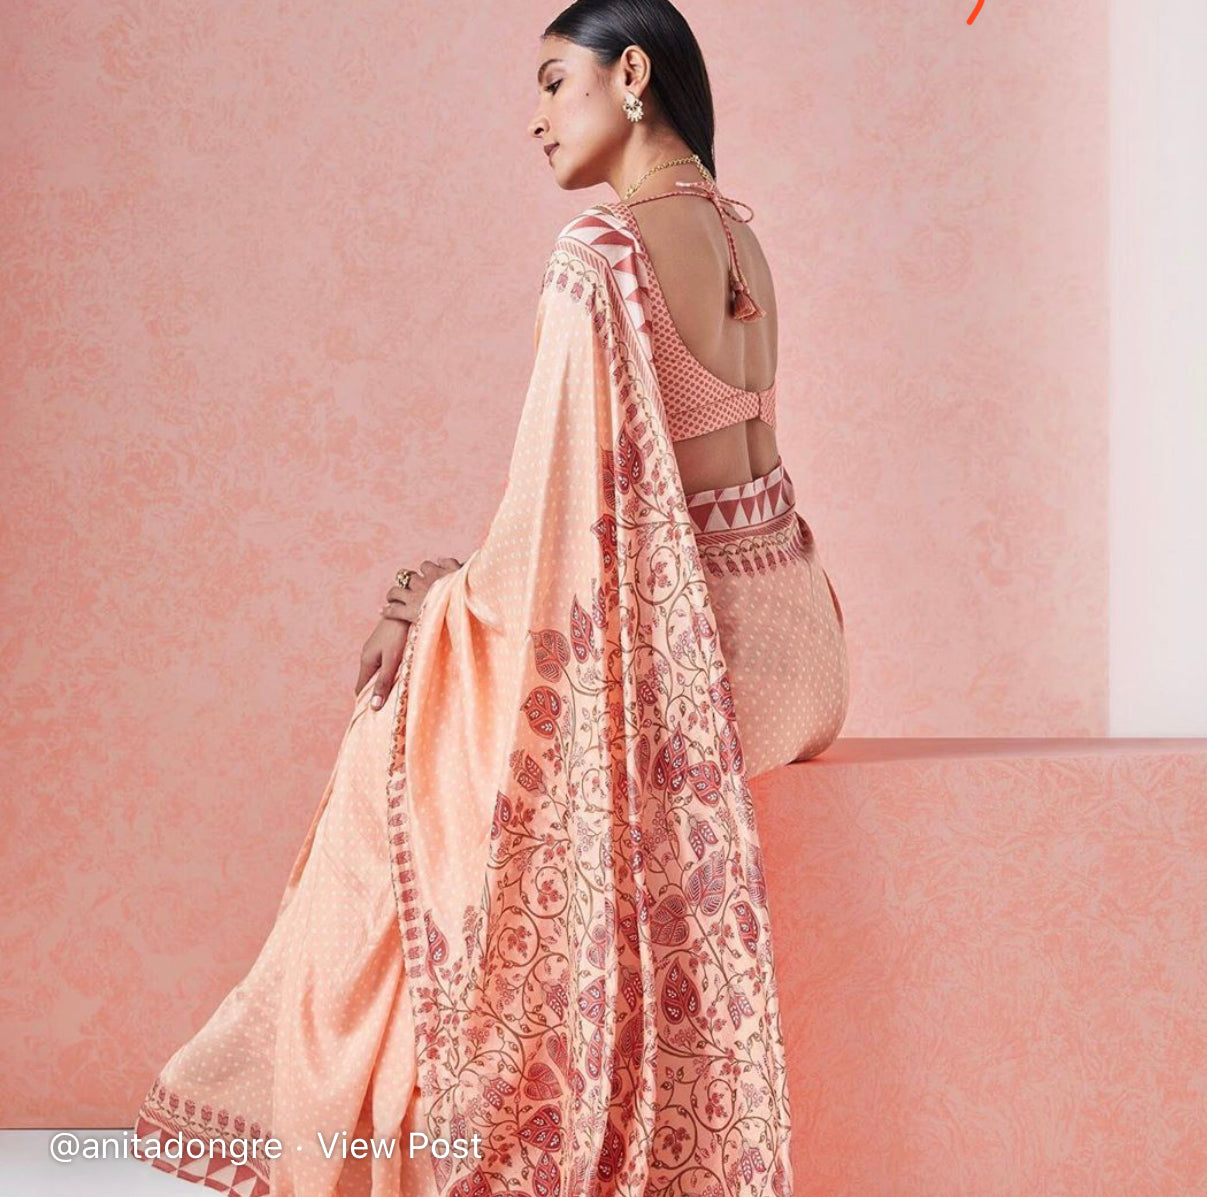 ANITA DONGRE | SABYASACHI | MANISH MALHOTRA | MOST POPULAR INDIAN OUTFIT DESIGNER FOR WEDDING PARTY & DIWALI 2020. Traditional Saree, Lehenga, Anarkali Indian attire has been re worked and re styled over the years many times, and each time it gets more exciting! Shop Indian outfits on Sale for winter wedding & Diwali!